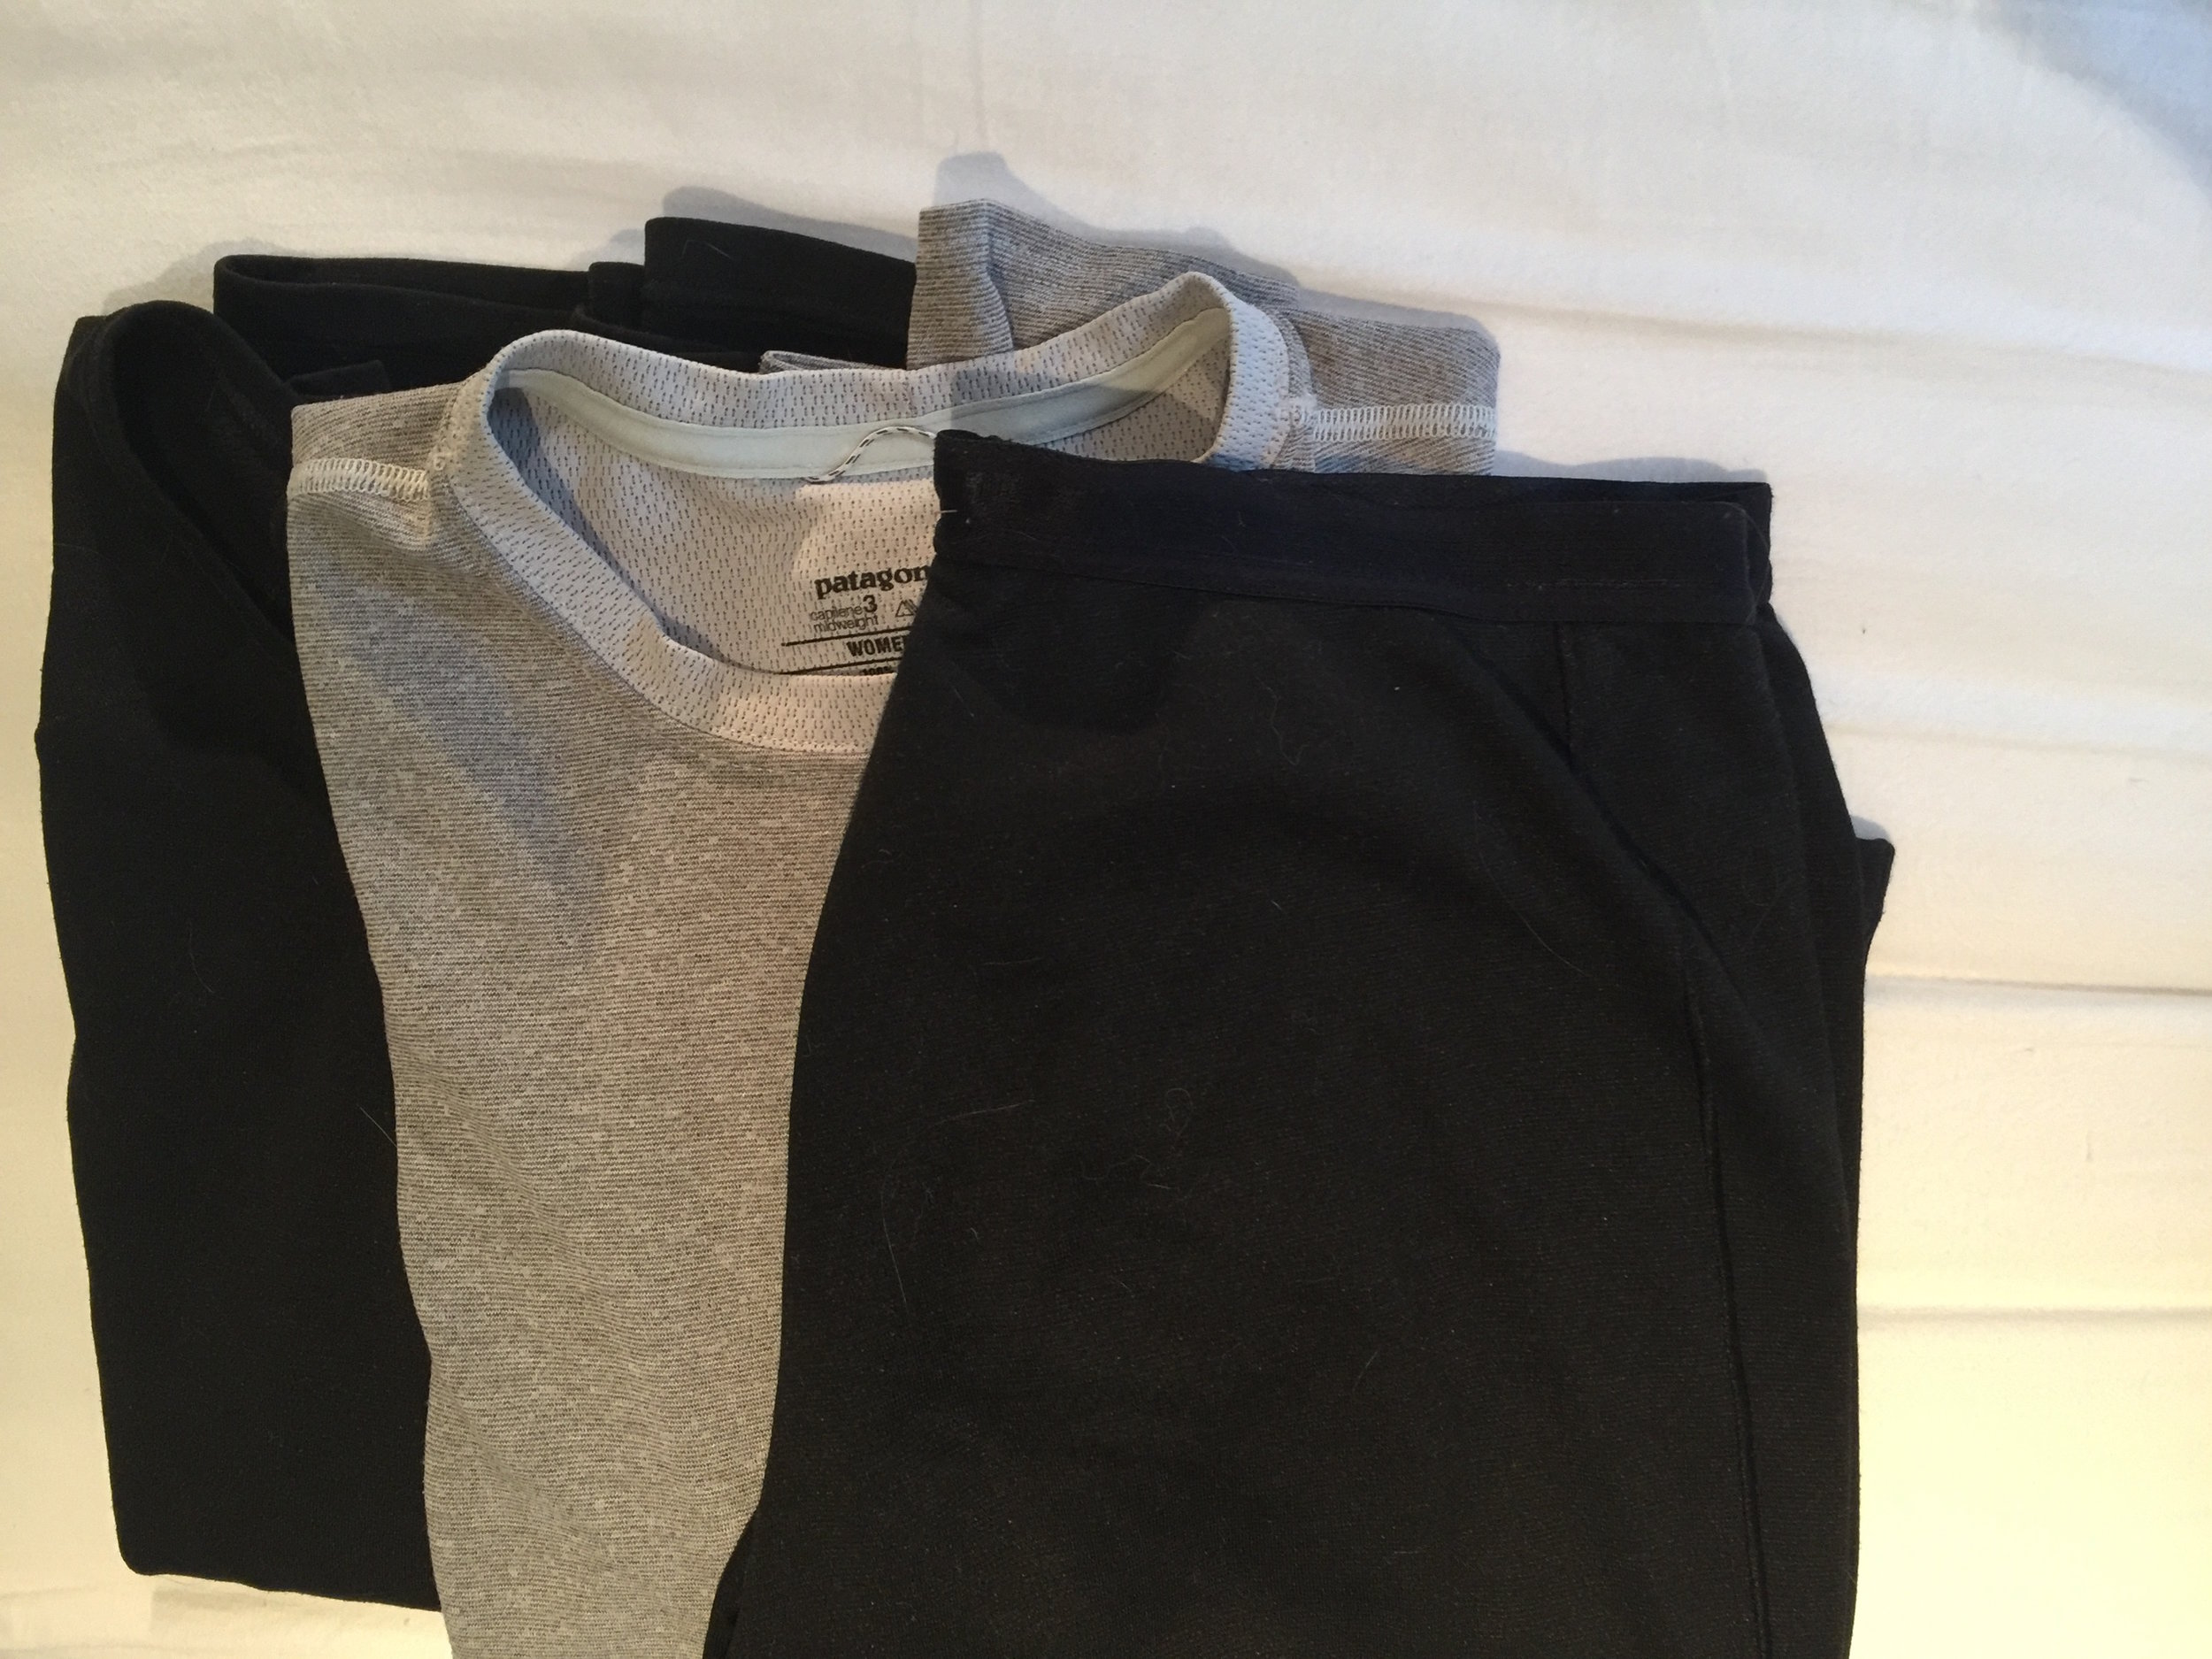 Travel Essentials - Thermals